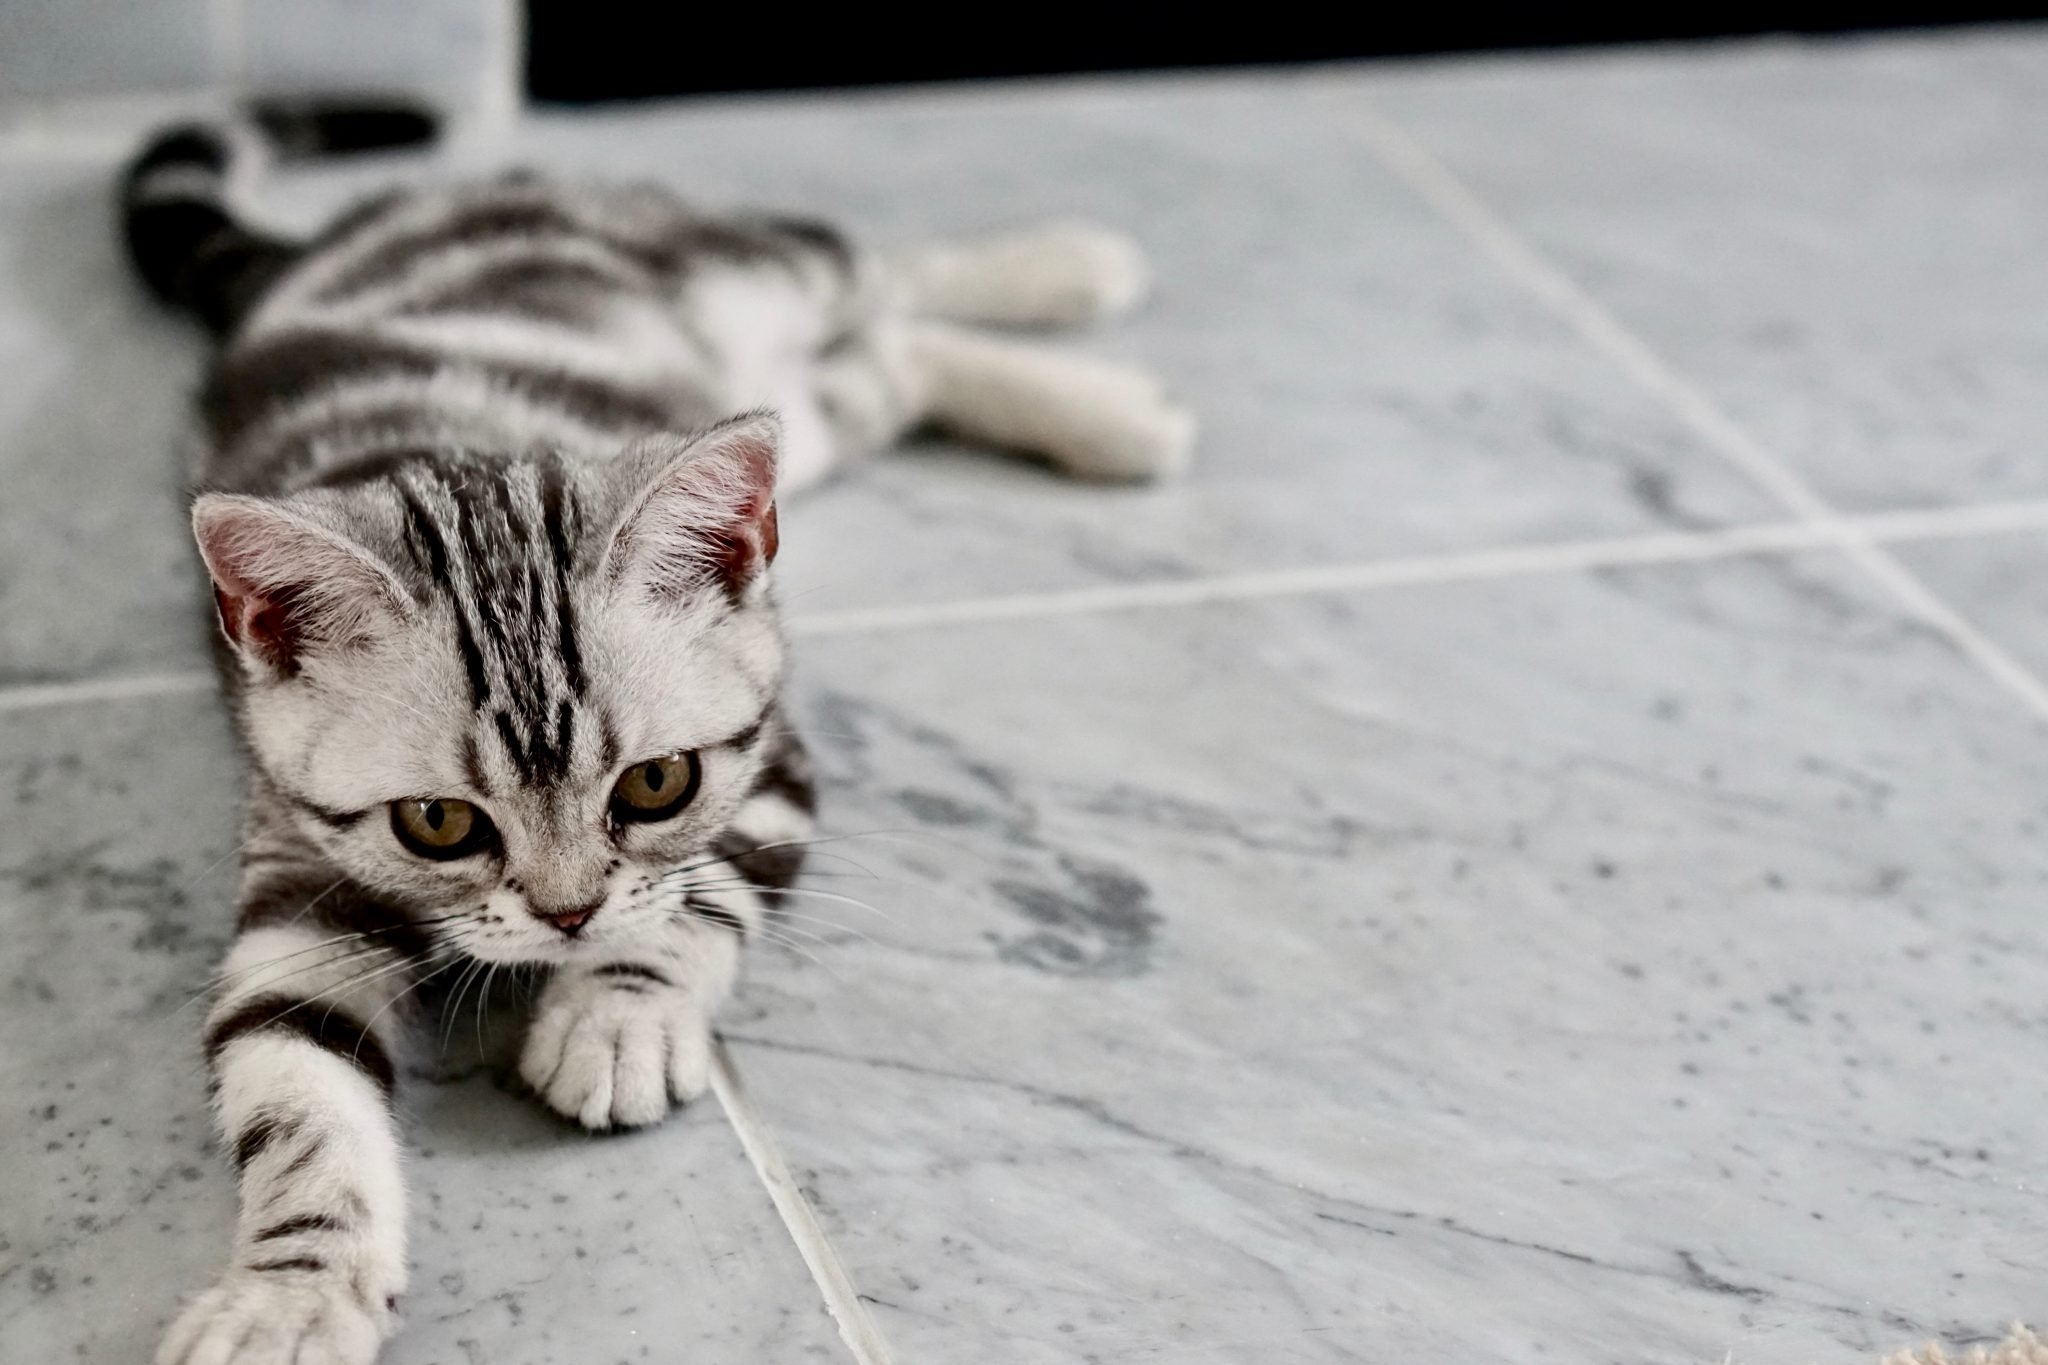 flea free cat on tiled floor